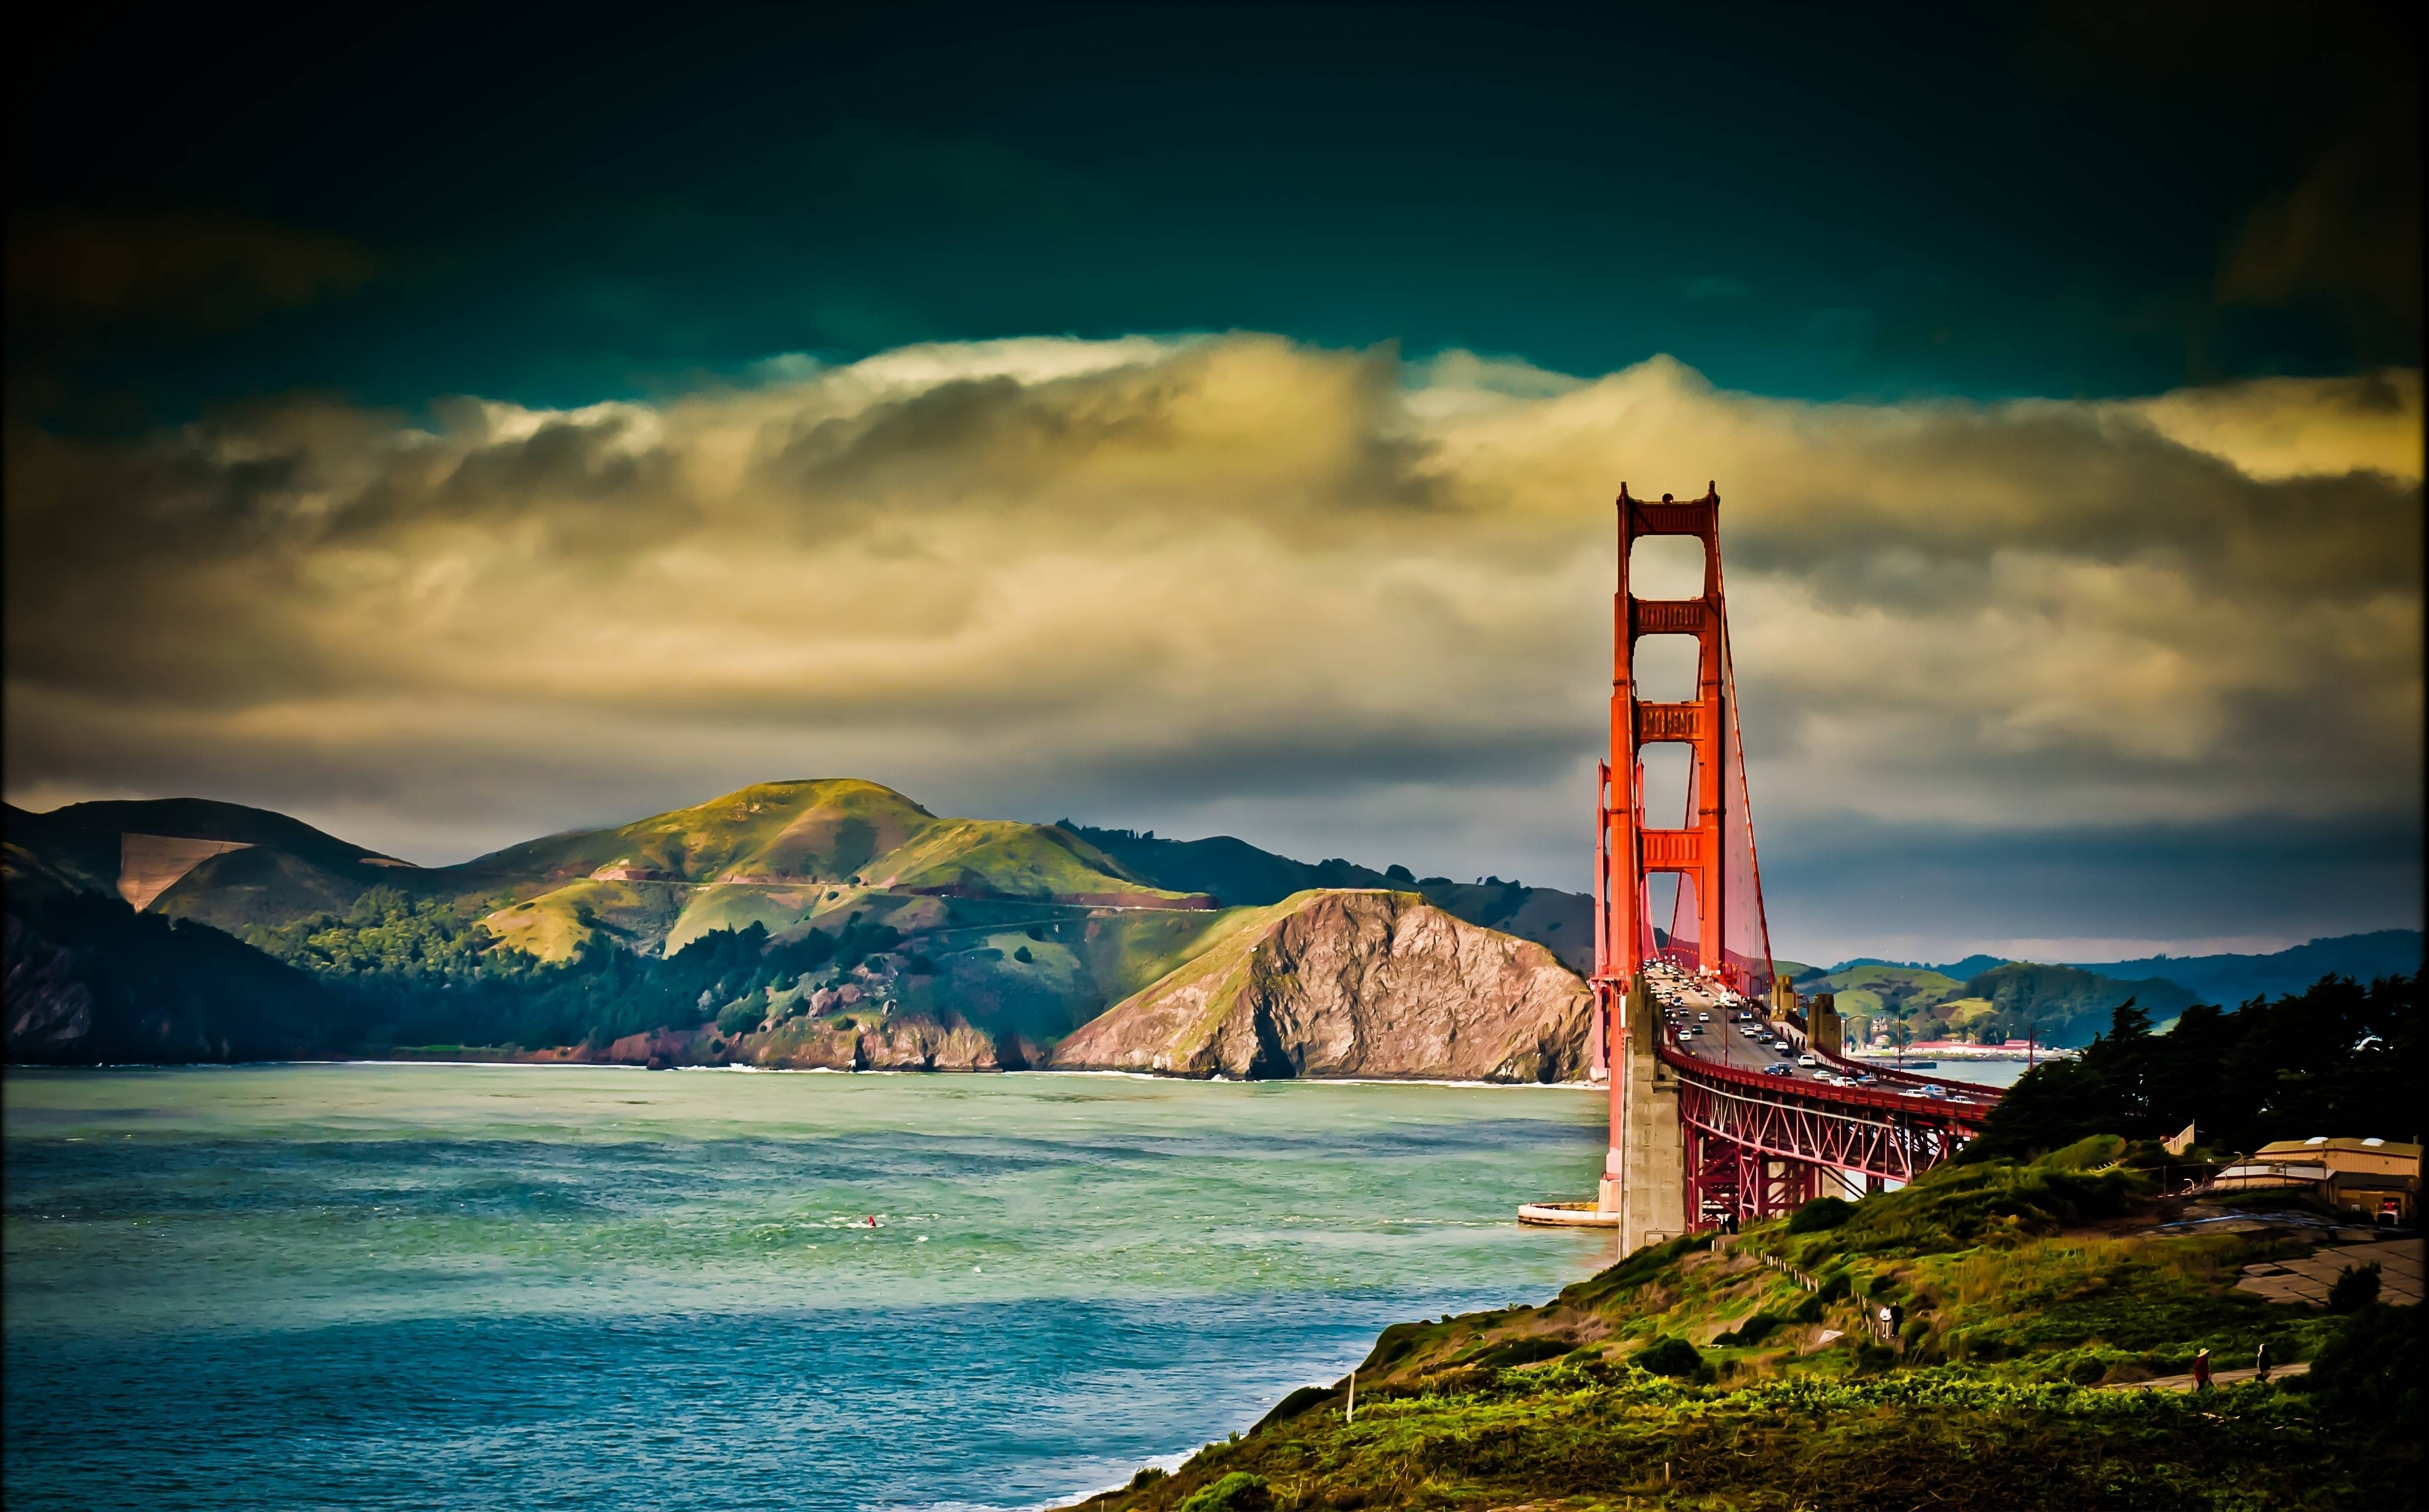 san francisco wallpapers hd - wallpaper cave